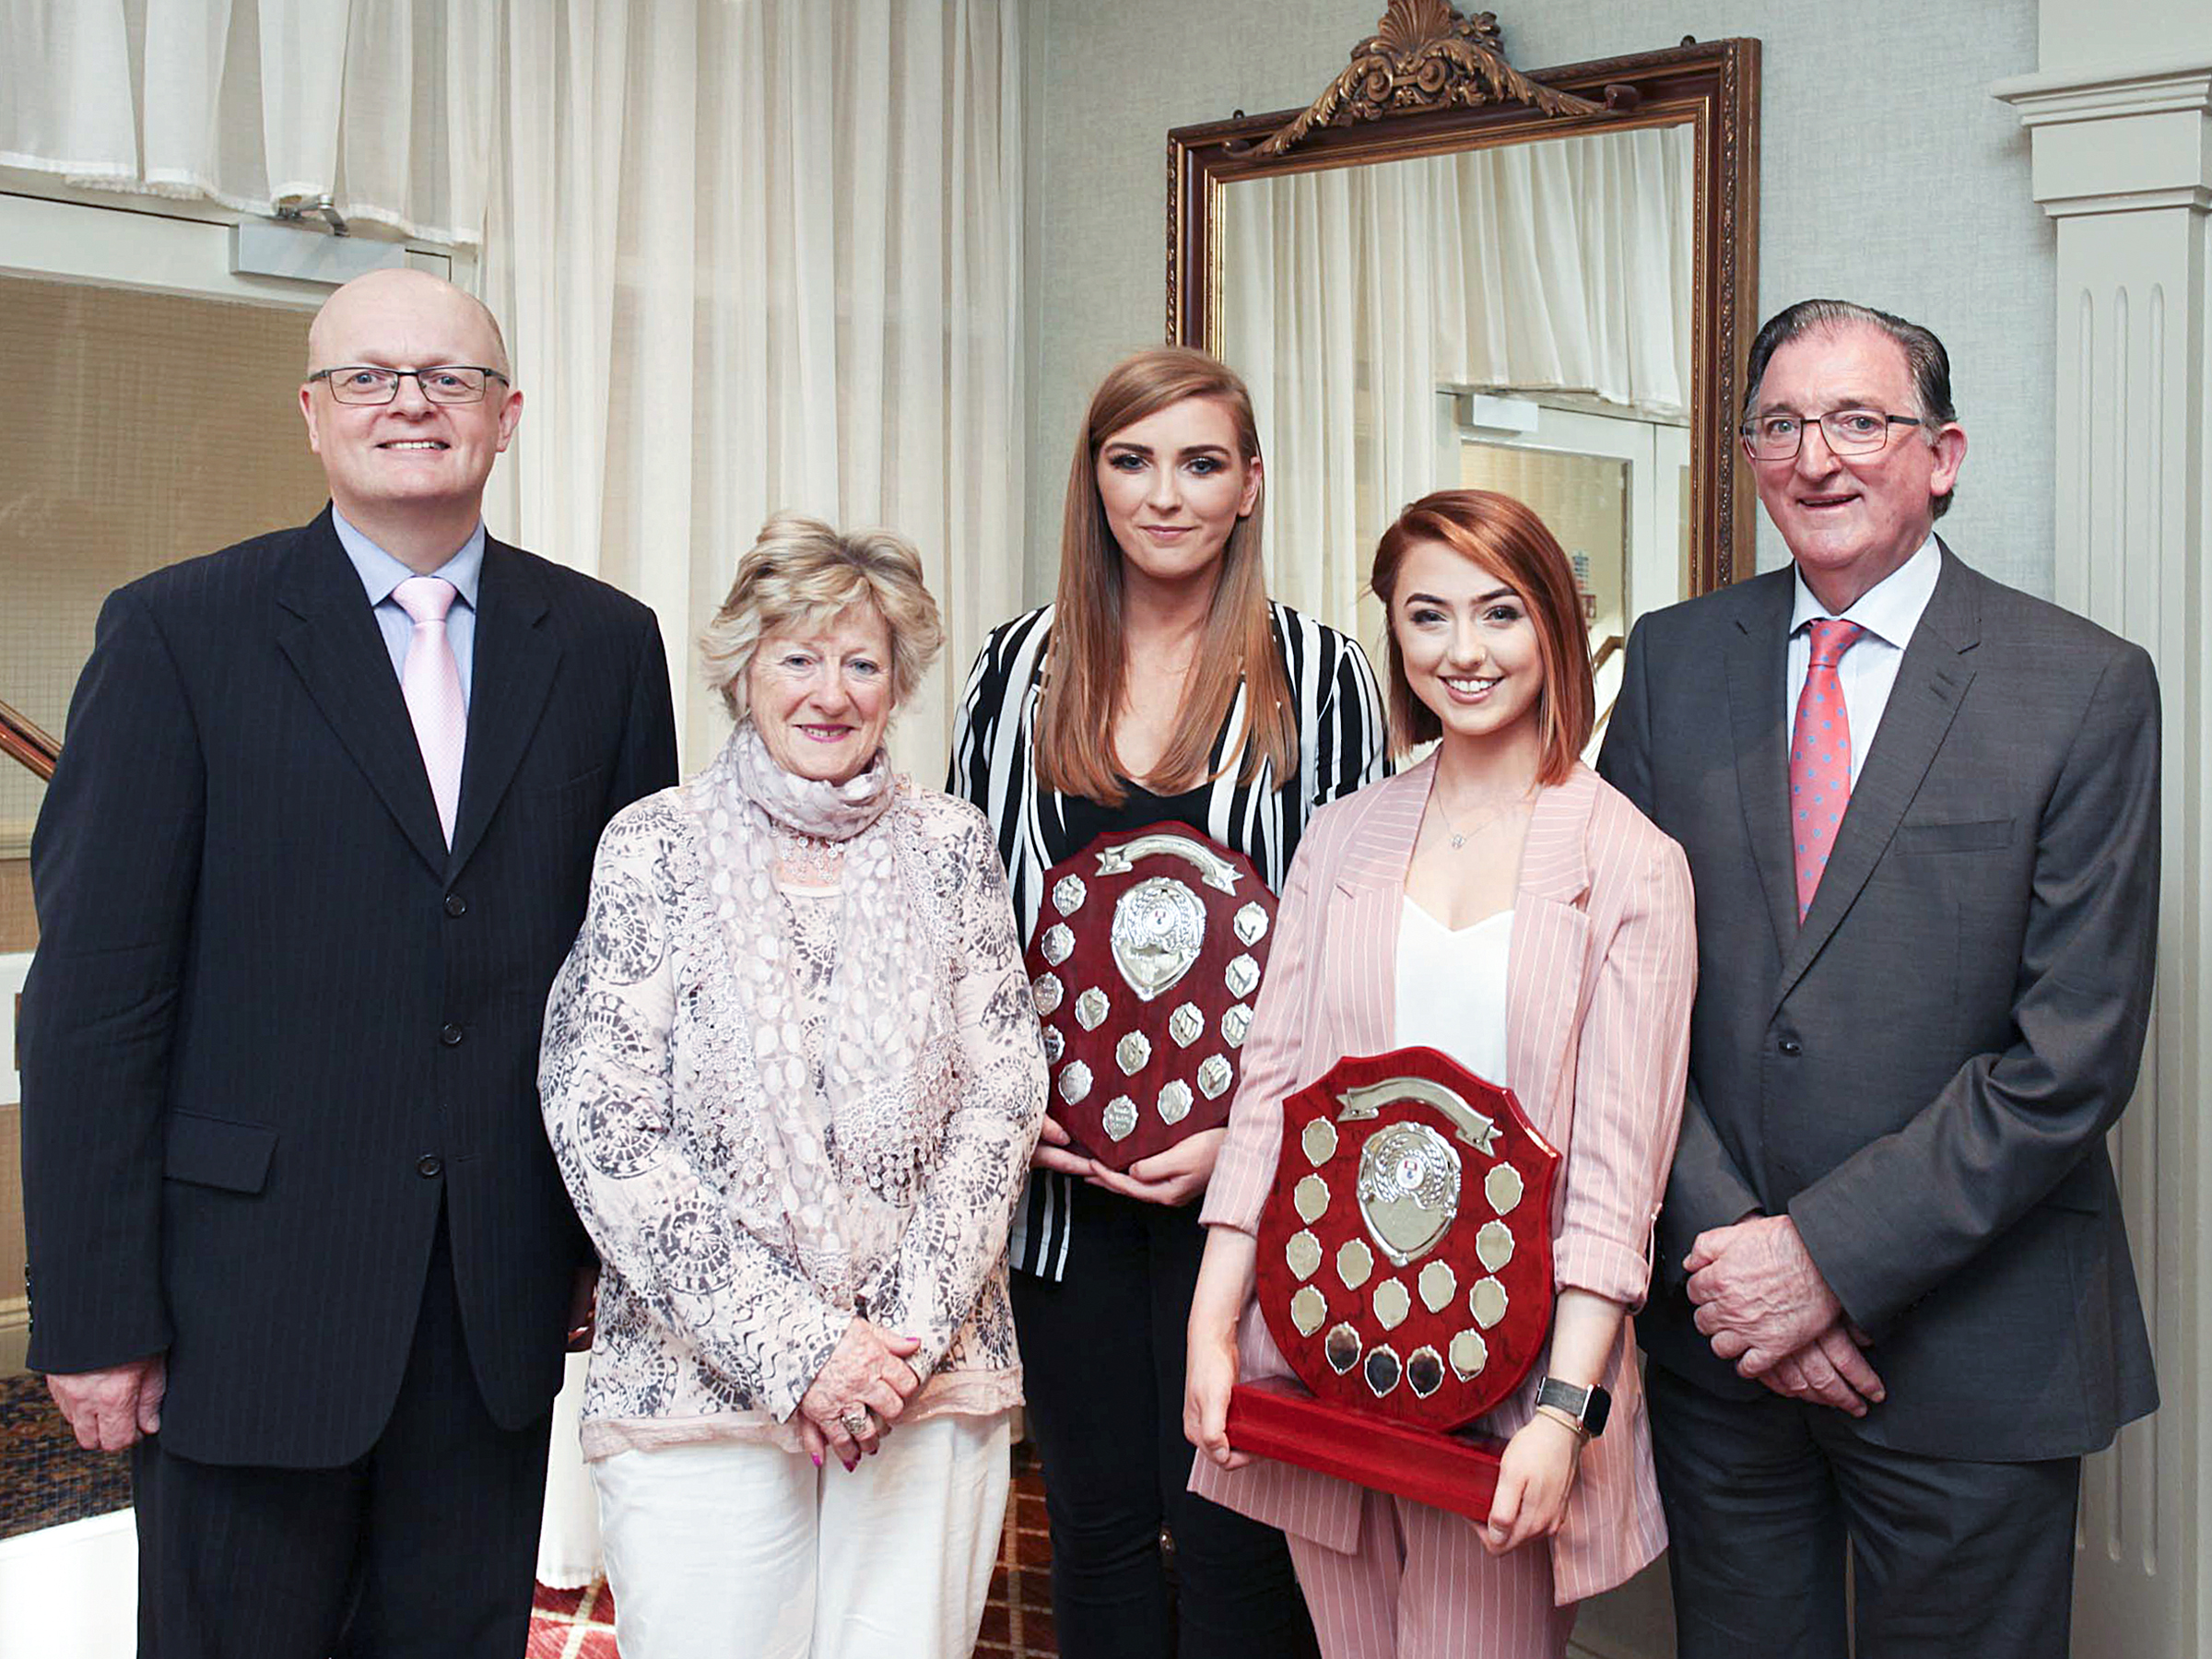 Photo (from left): Dr Thomas O'Toole, (Head of School of Business, WIT), Ann Cusack (Granville Hotel), Aoife McAuliffe (winner), Chloe Driver (winner), Liam Cusack (Granville Hotel).